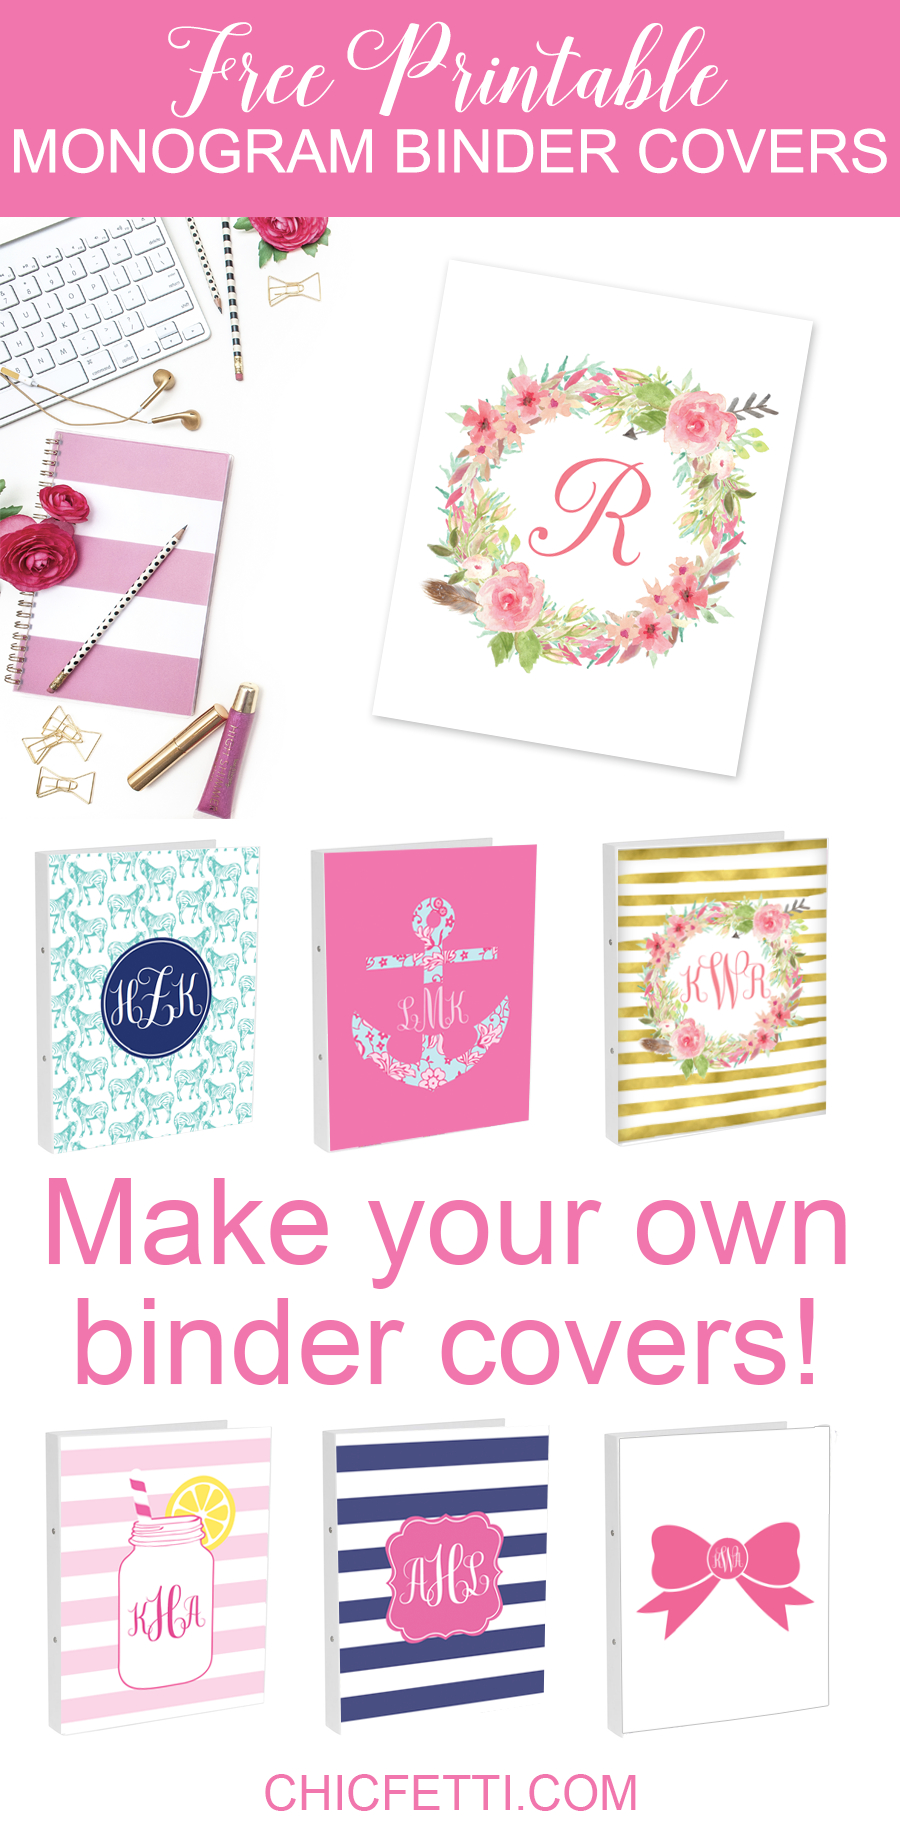 Free Printable Monogram Binder Covers From @chicfetti - Make Your Ow - Free Printable Monogram Binder Covers